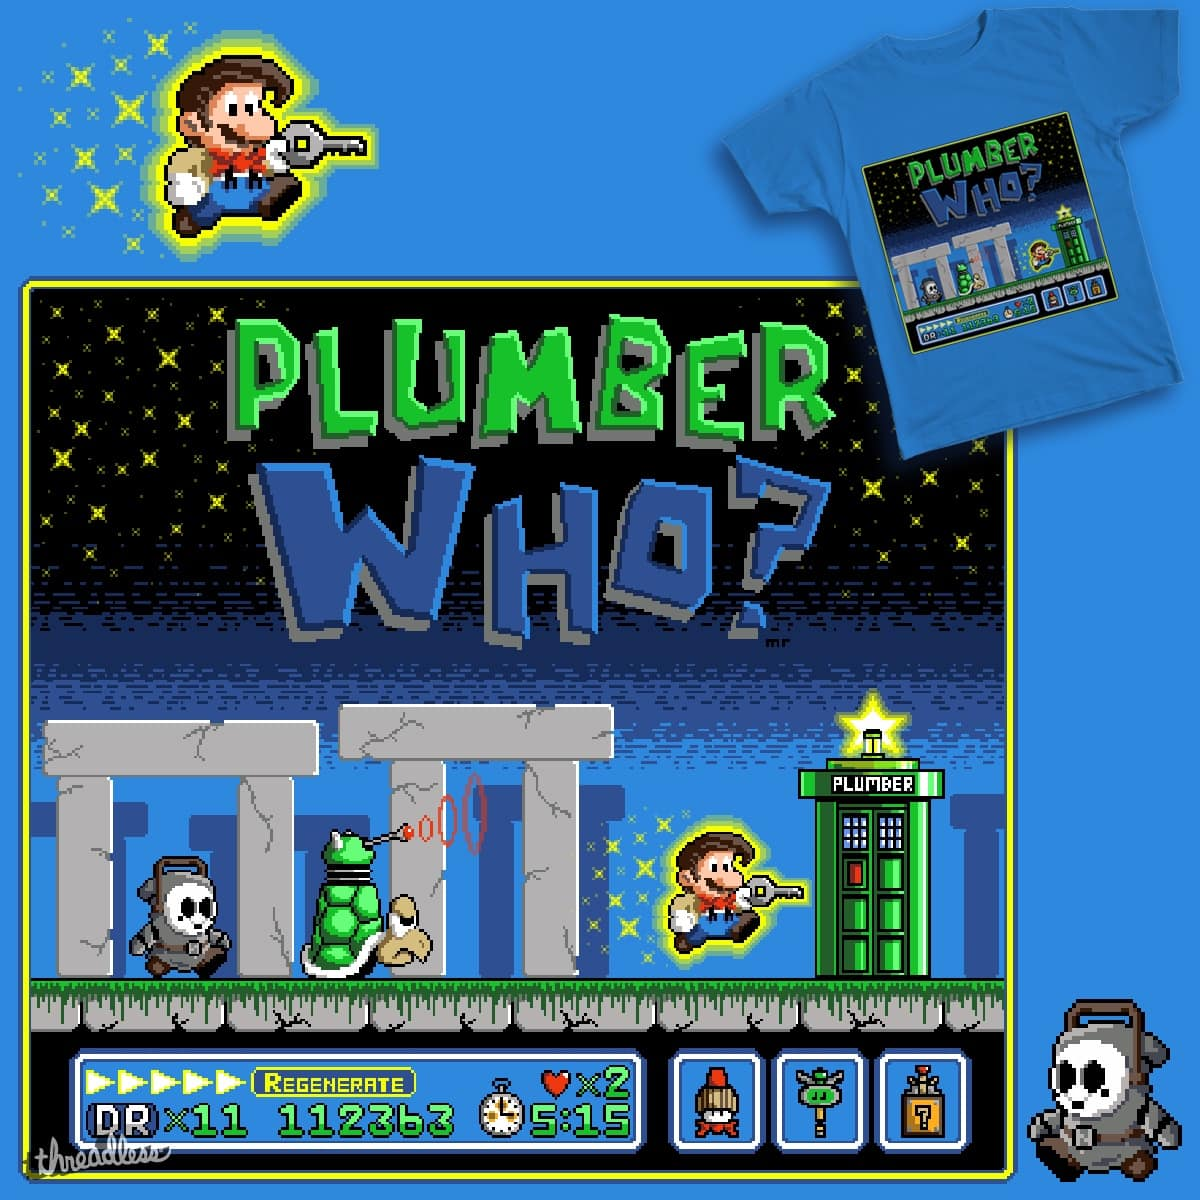 Plumber Who? by Mike_the_Spike on Threadless